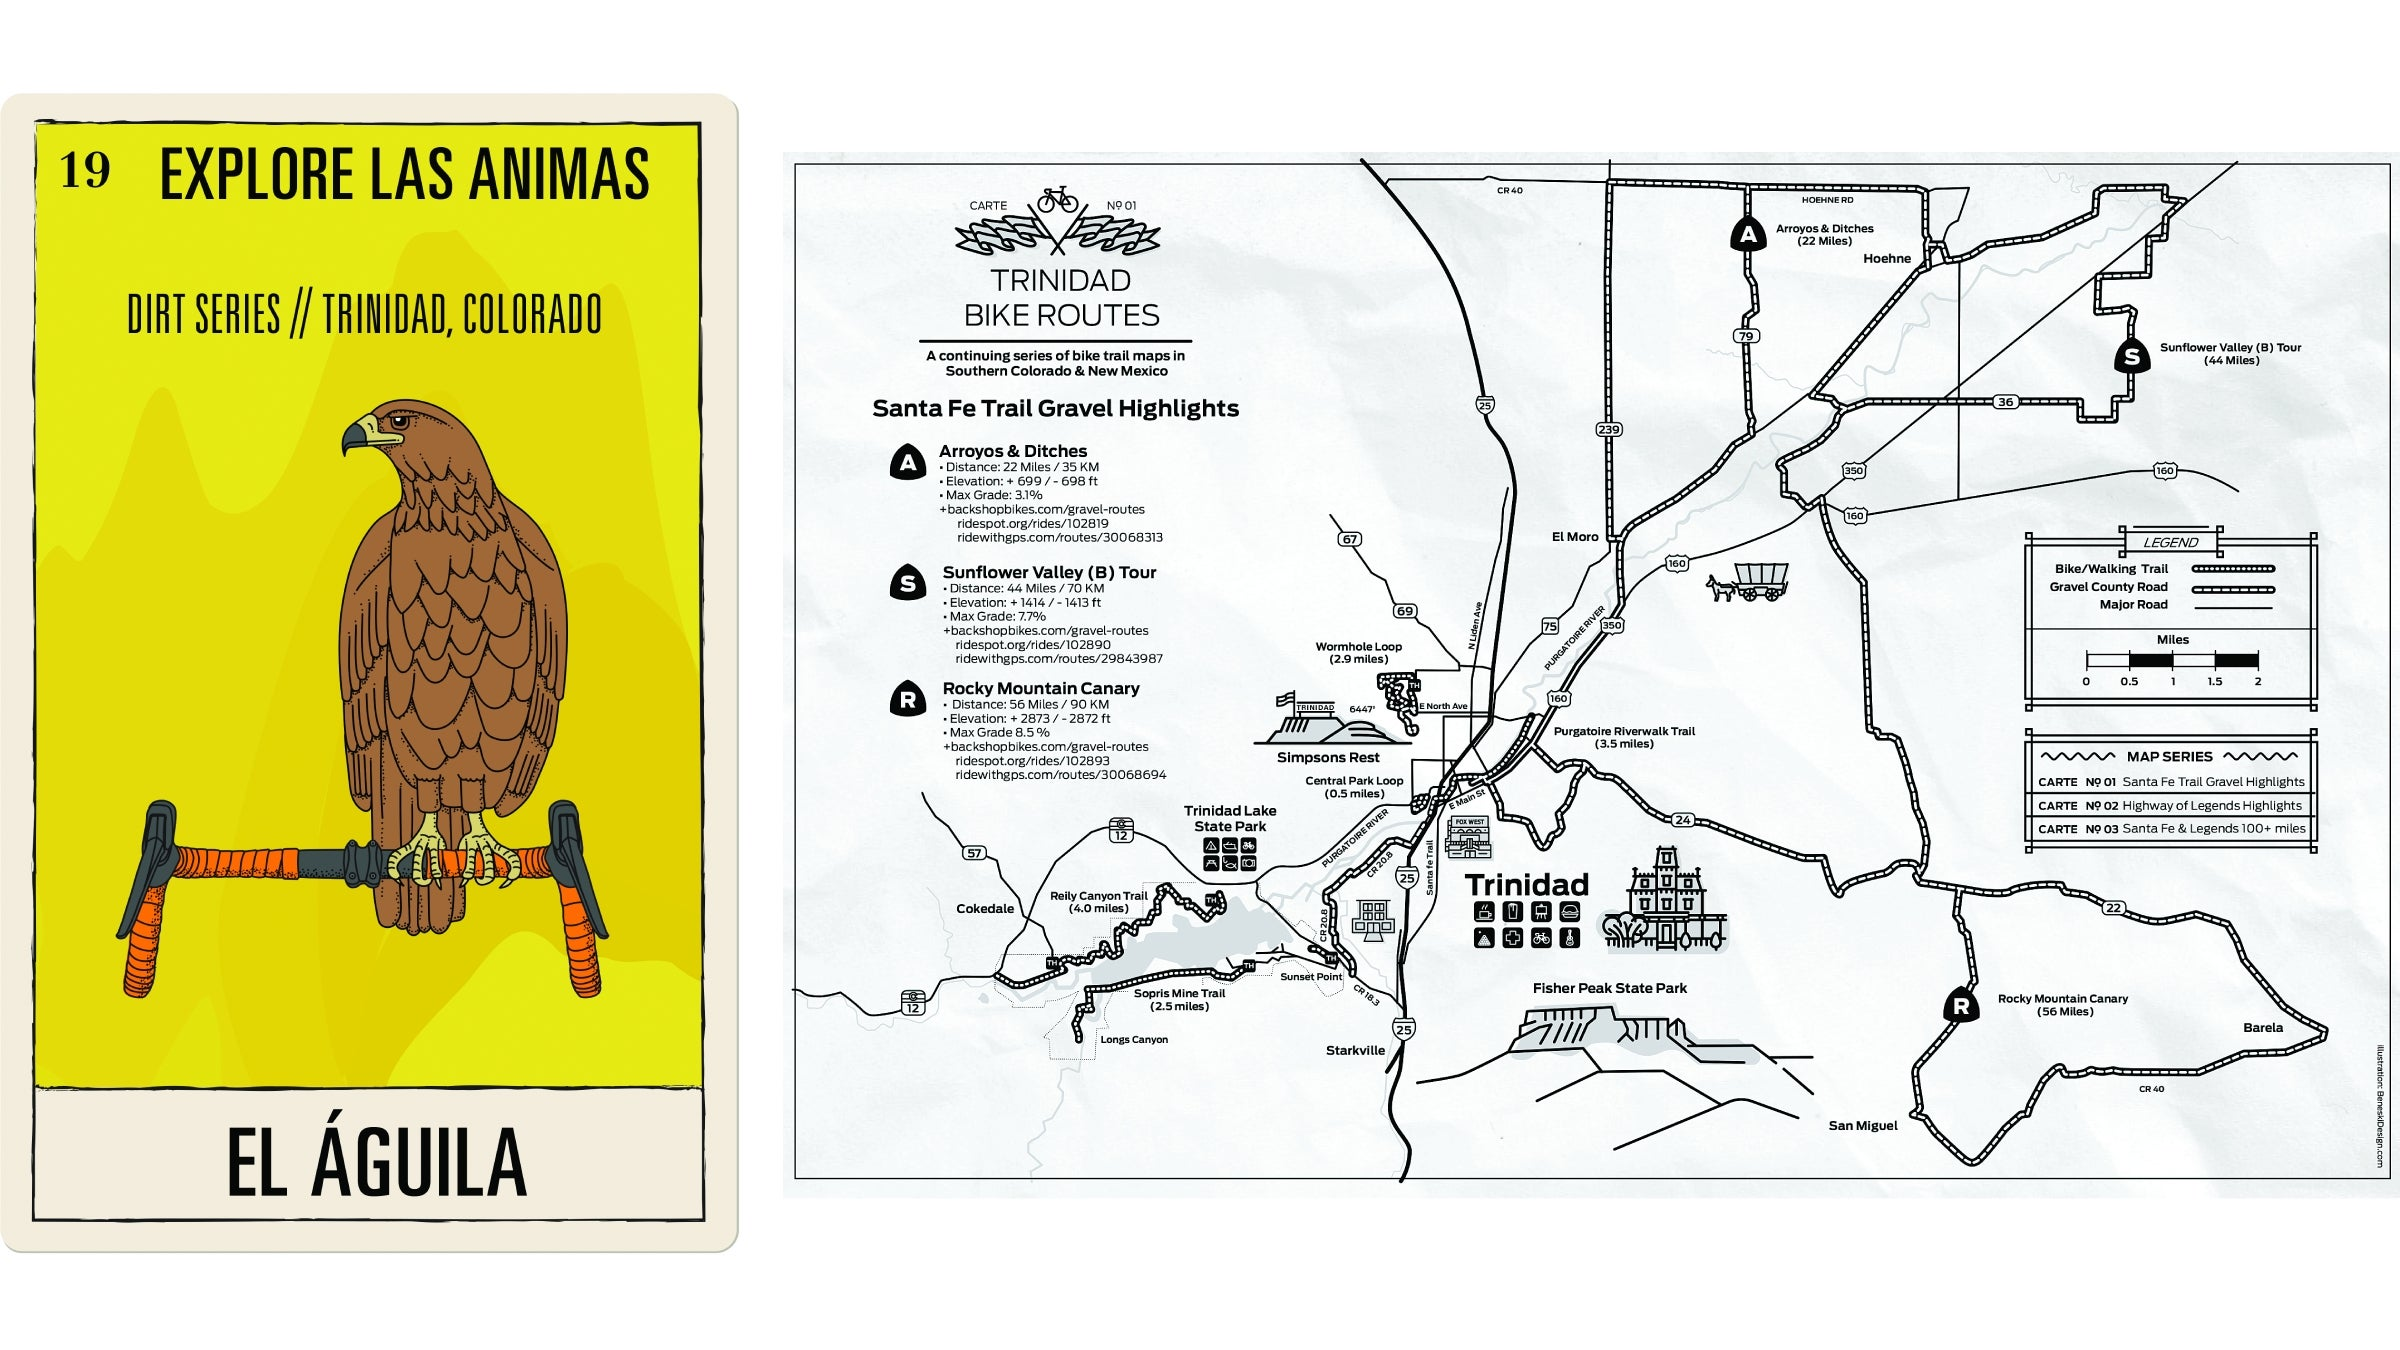 Poster art and gravel map of Trinidad